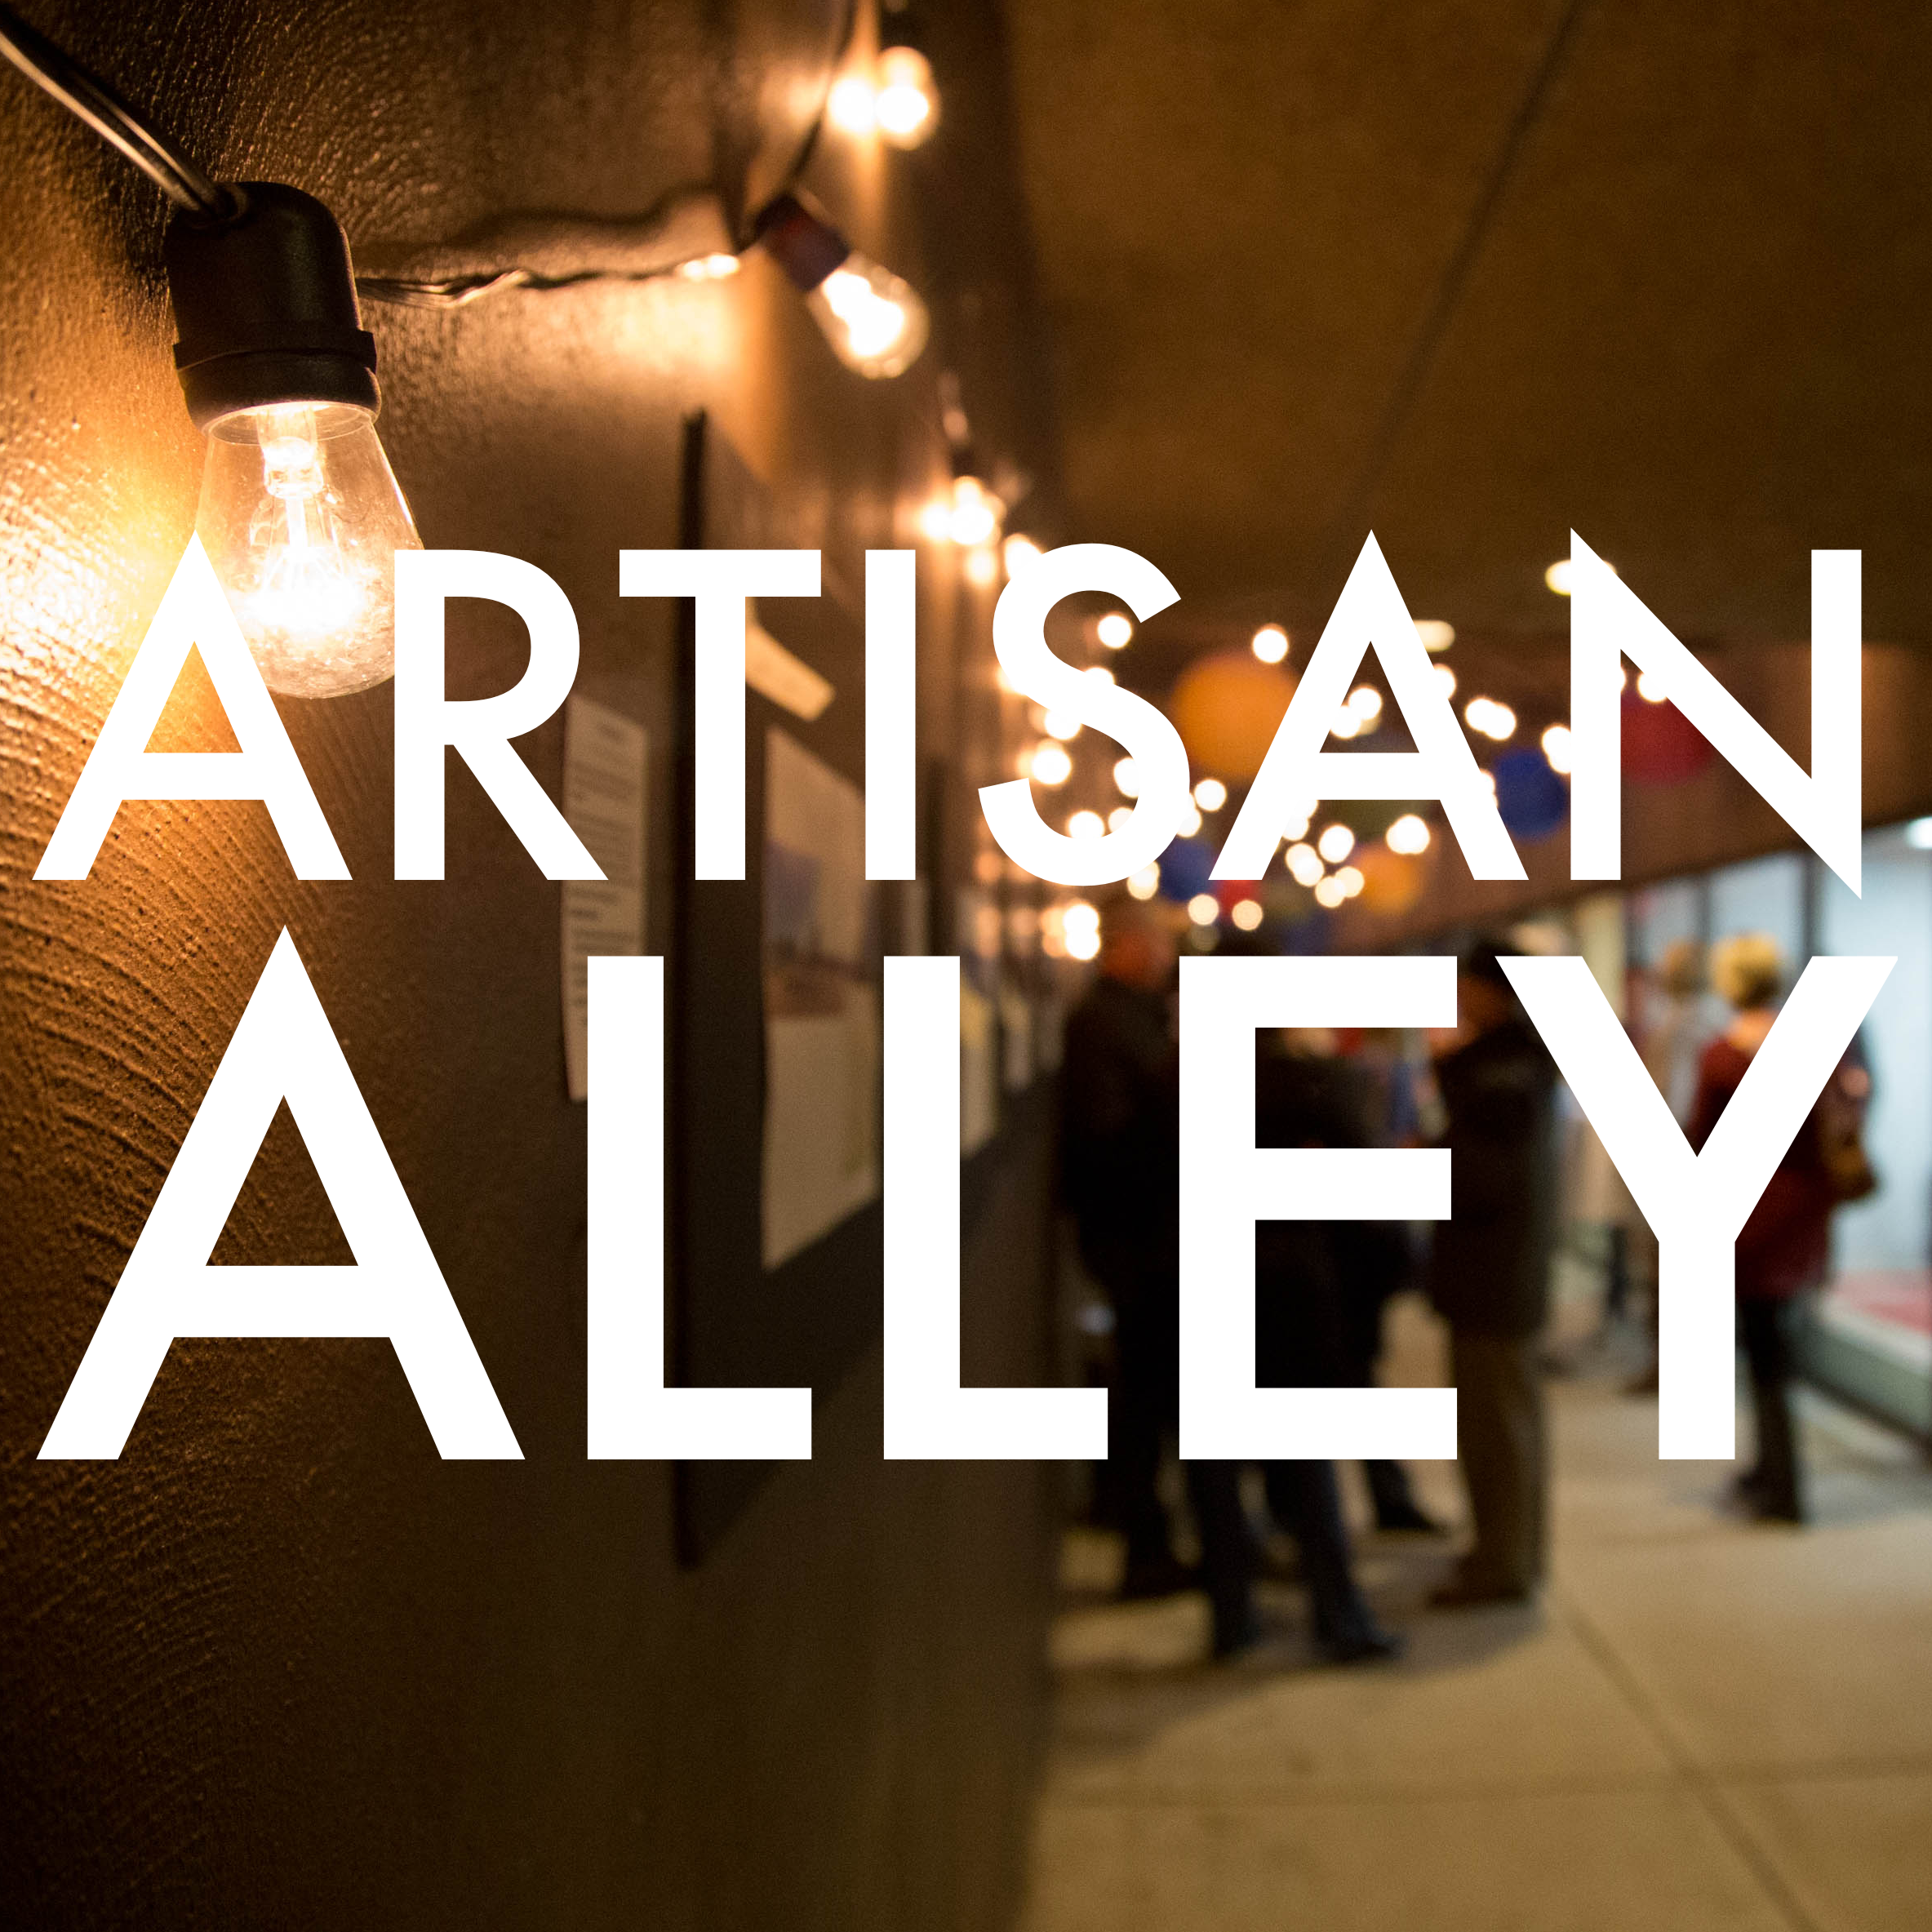 Artisan Alley is a unique arts shopping district in downtown Stevens Point that is launching new businesses like  ArtEffects . Click  here  to learn more about these clustered storefronts.